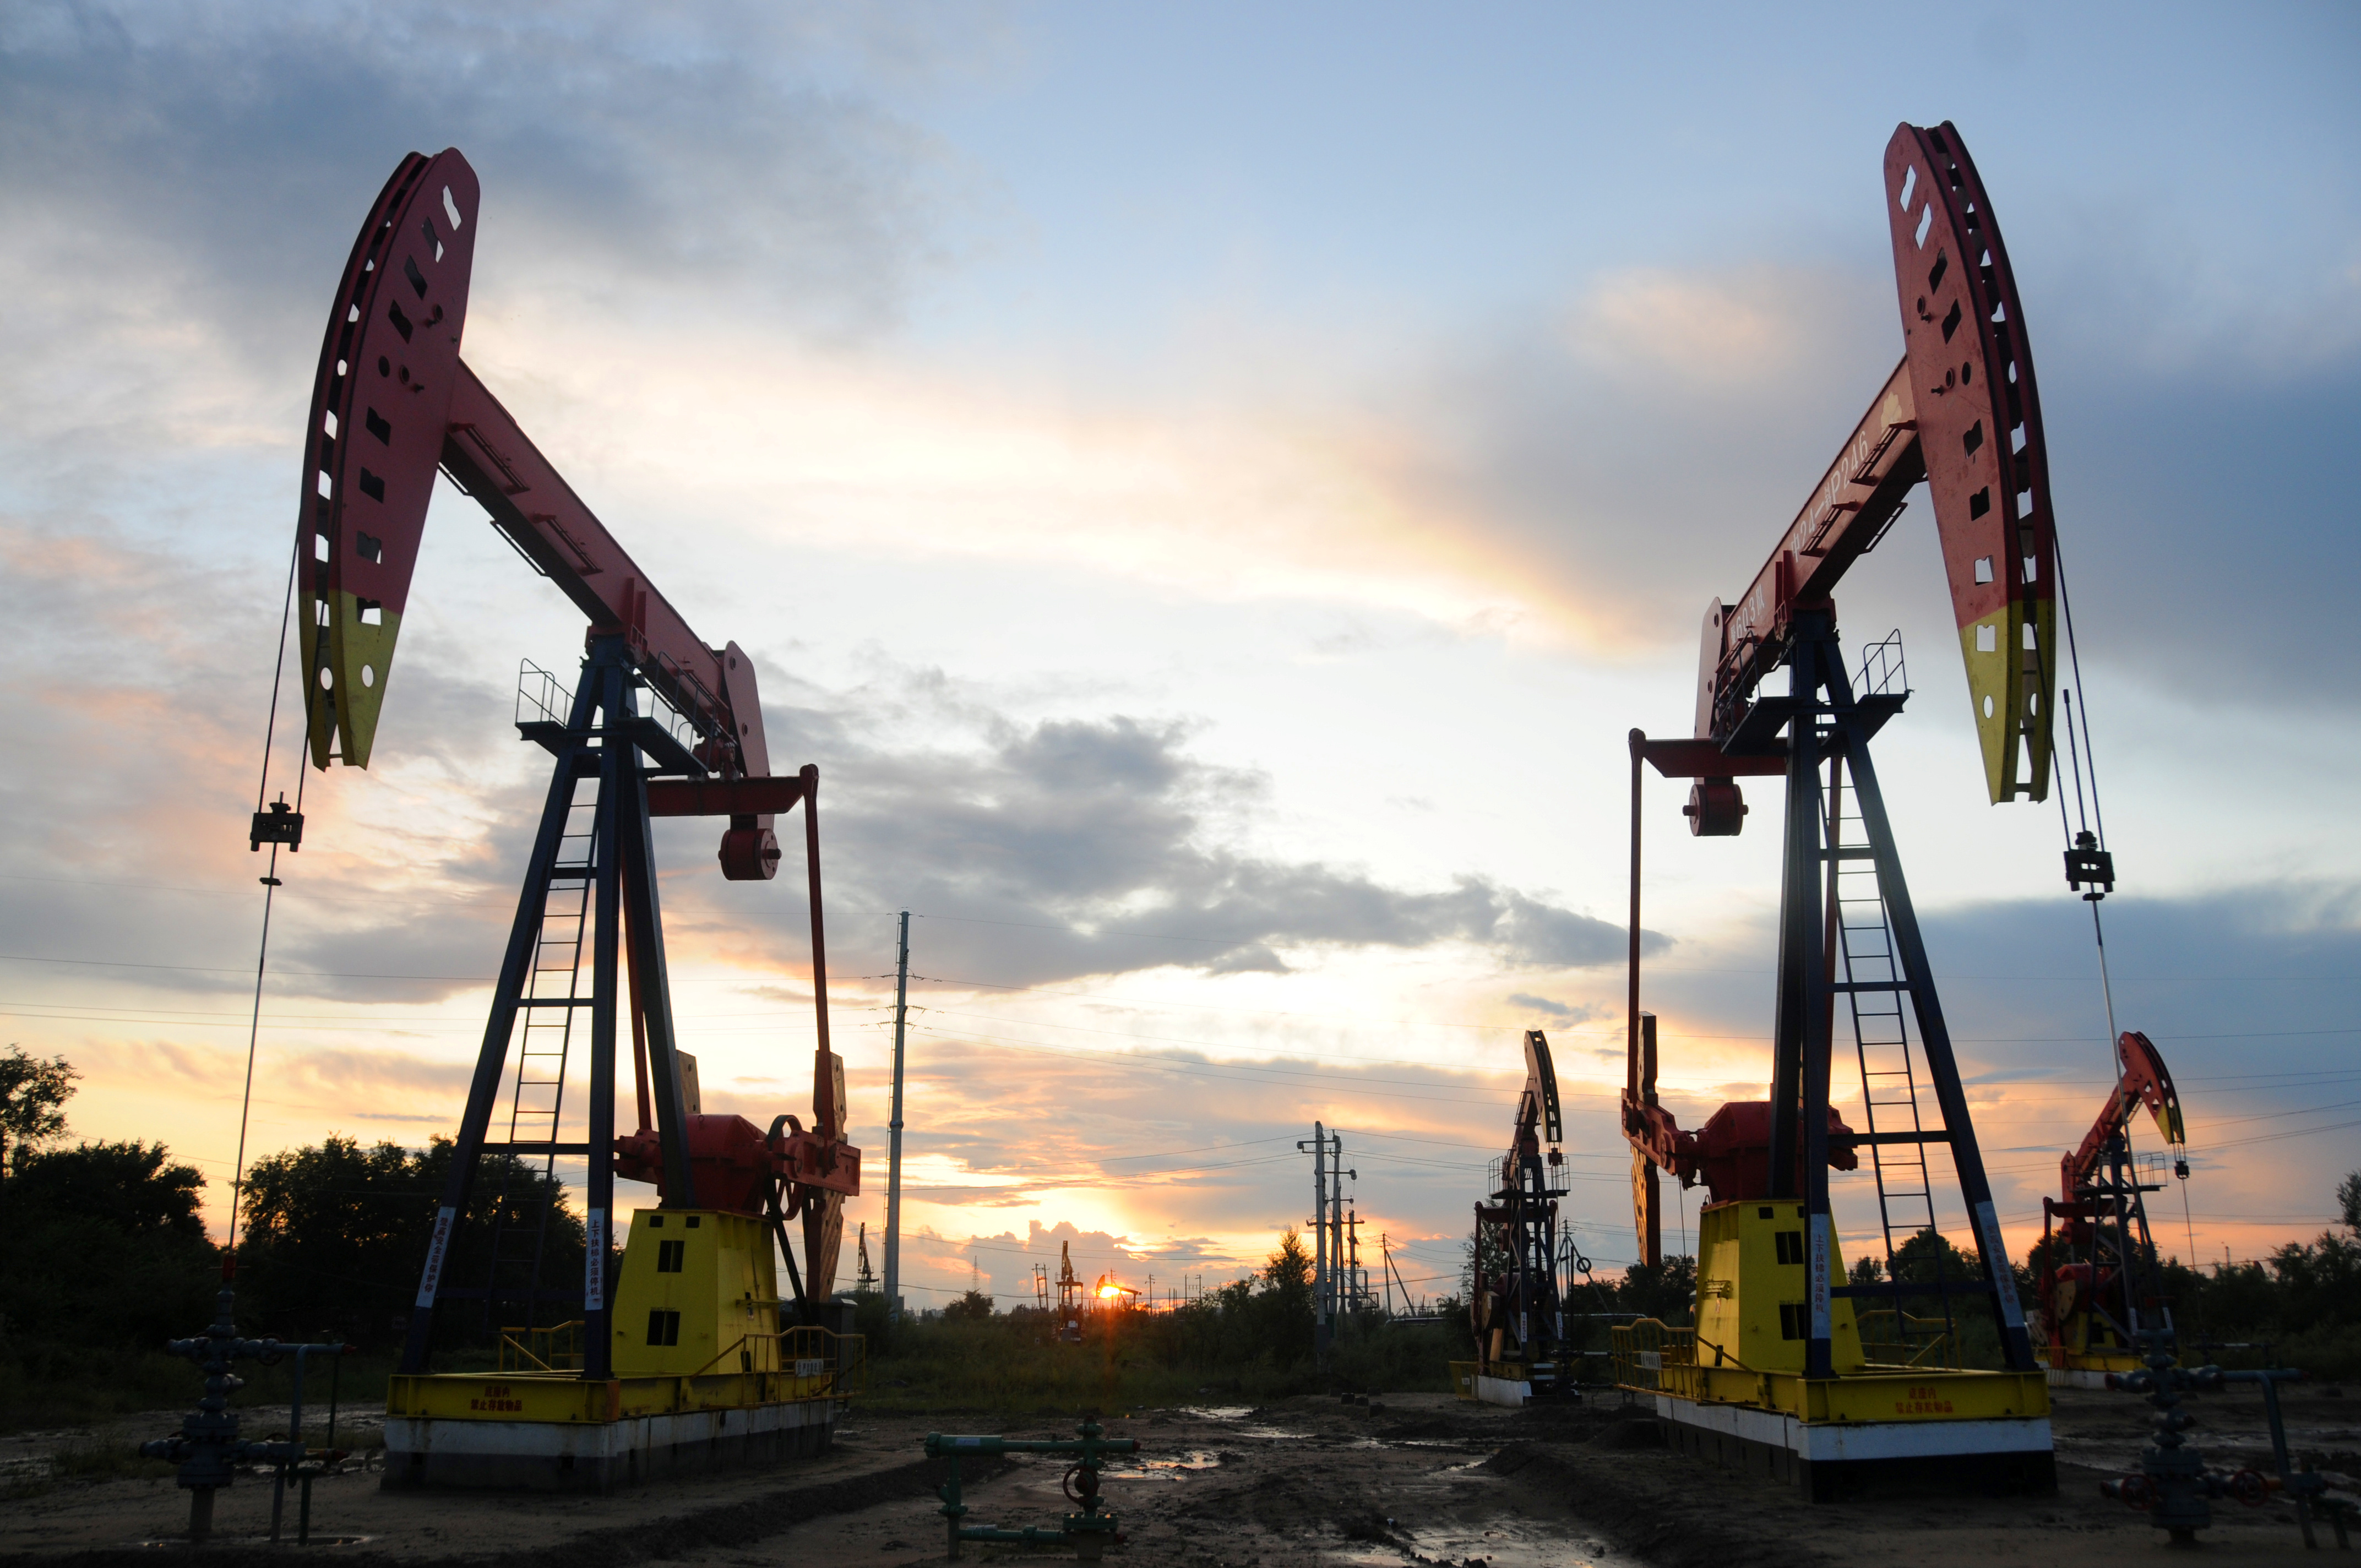 Oil jumps on weather concerns in Gulf of Mexico | Reuters